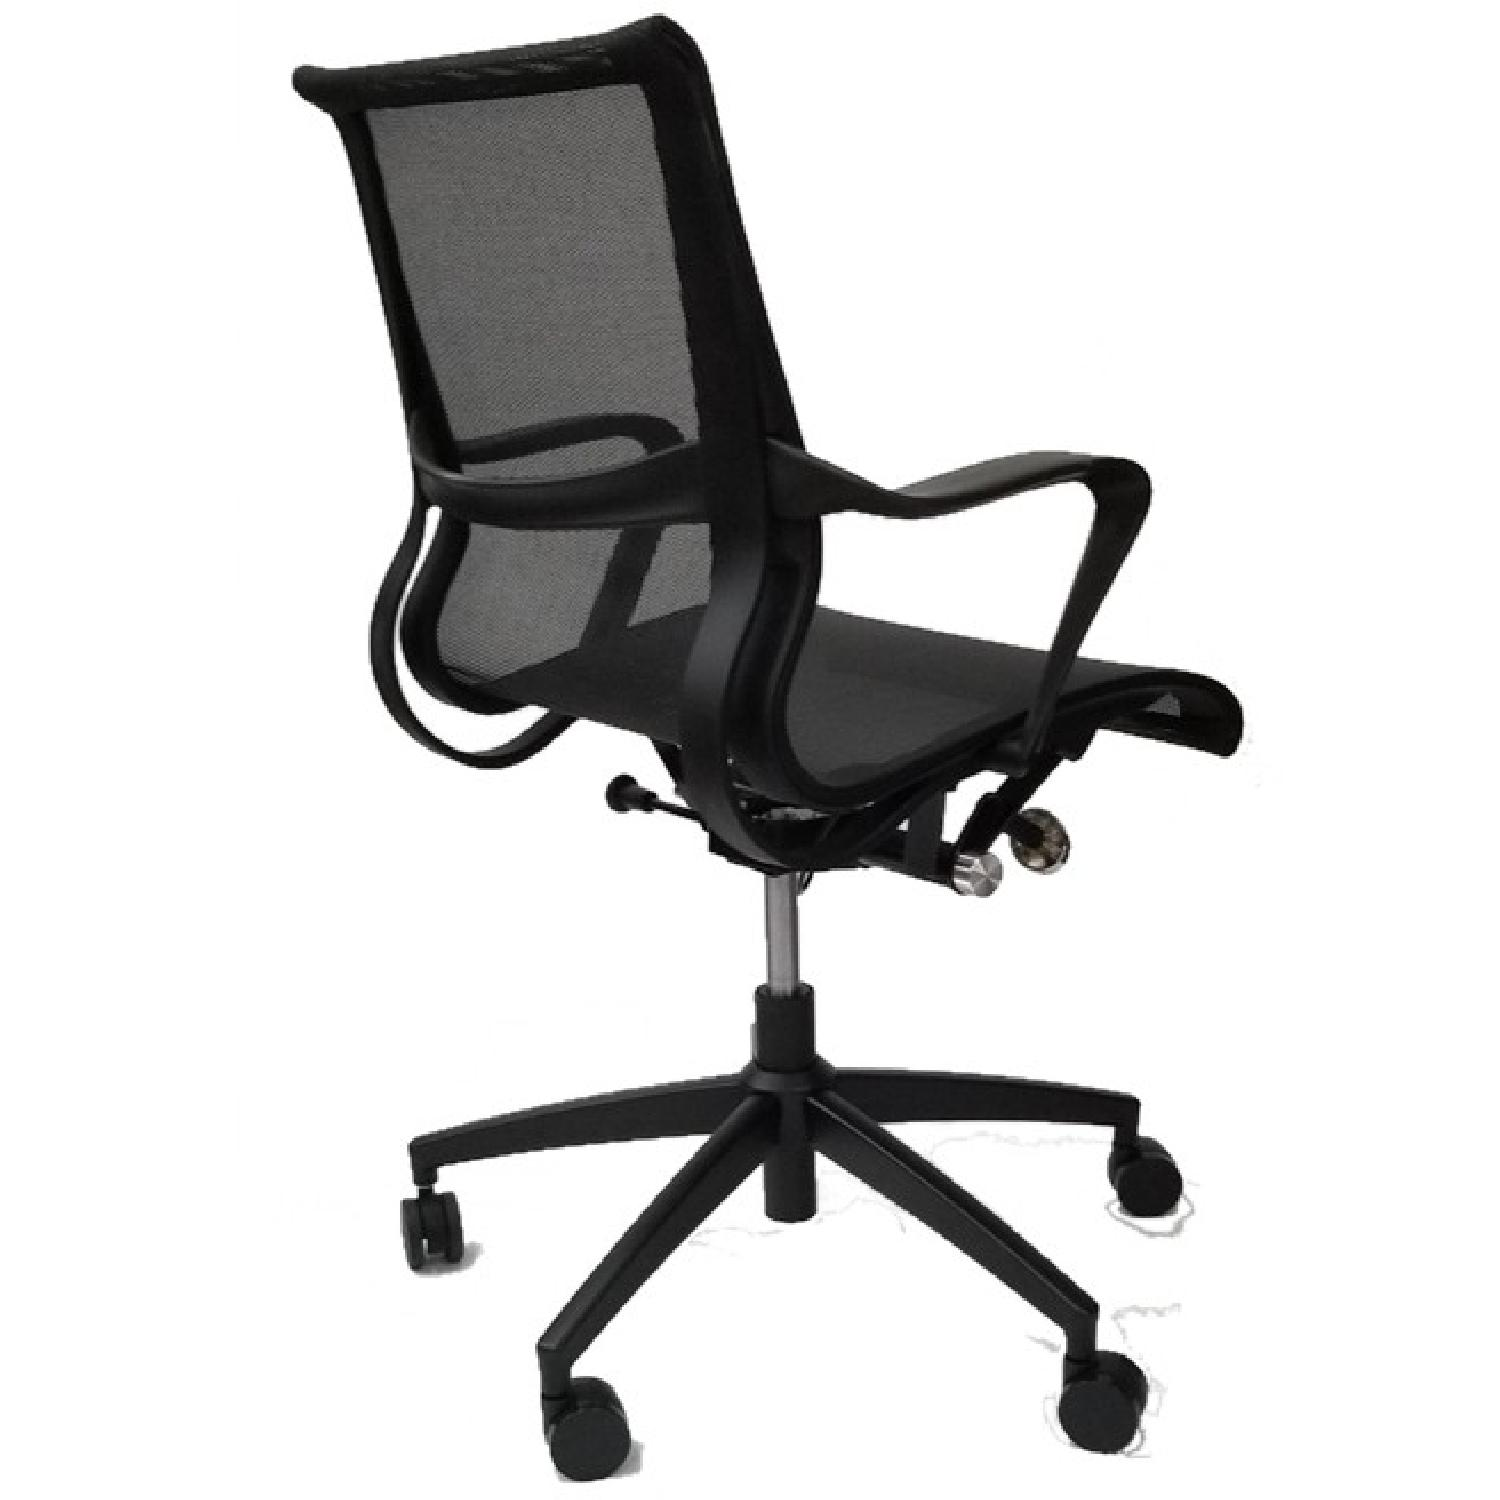 Modern Office Chair w/ Armrests & Black Mesh Fabric - image-0